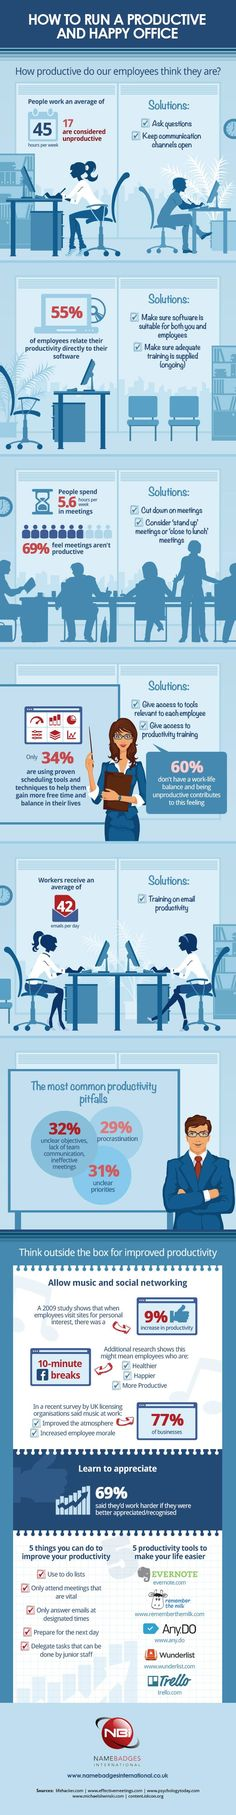 10 minutos en #RRSS aumentan la productividad en la oficina #infographic How to Run a Productive Office